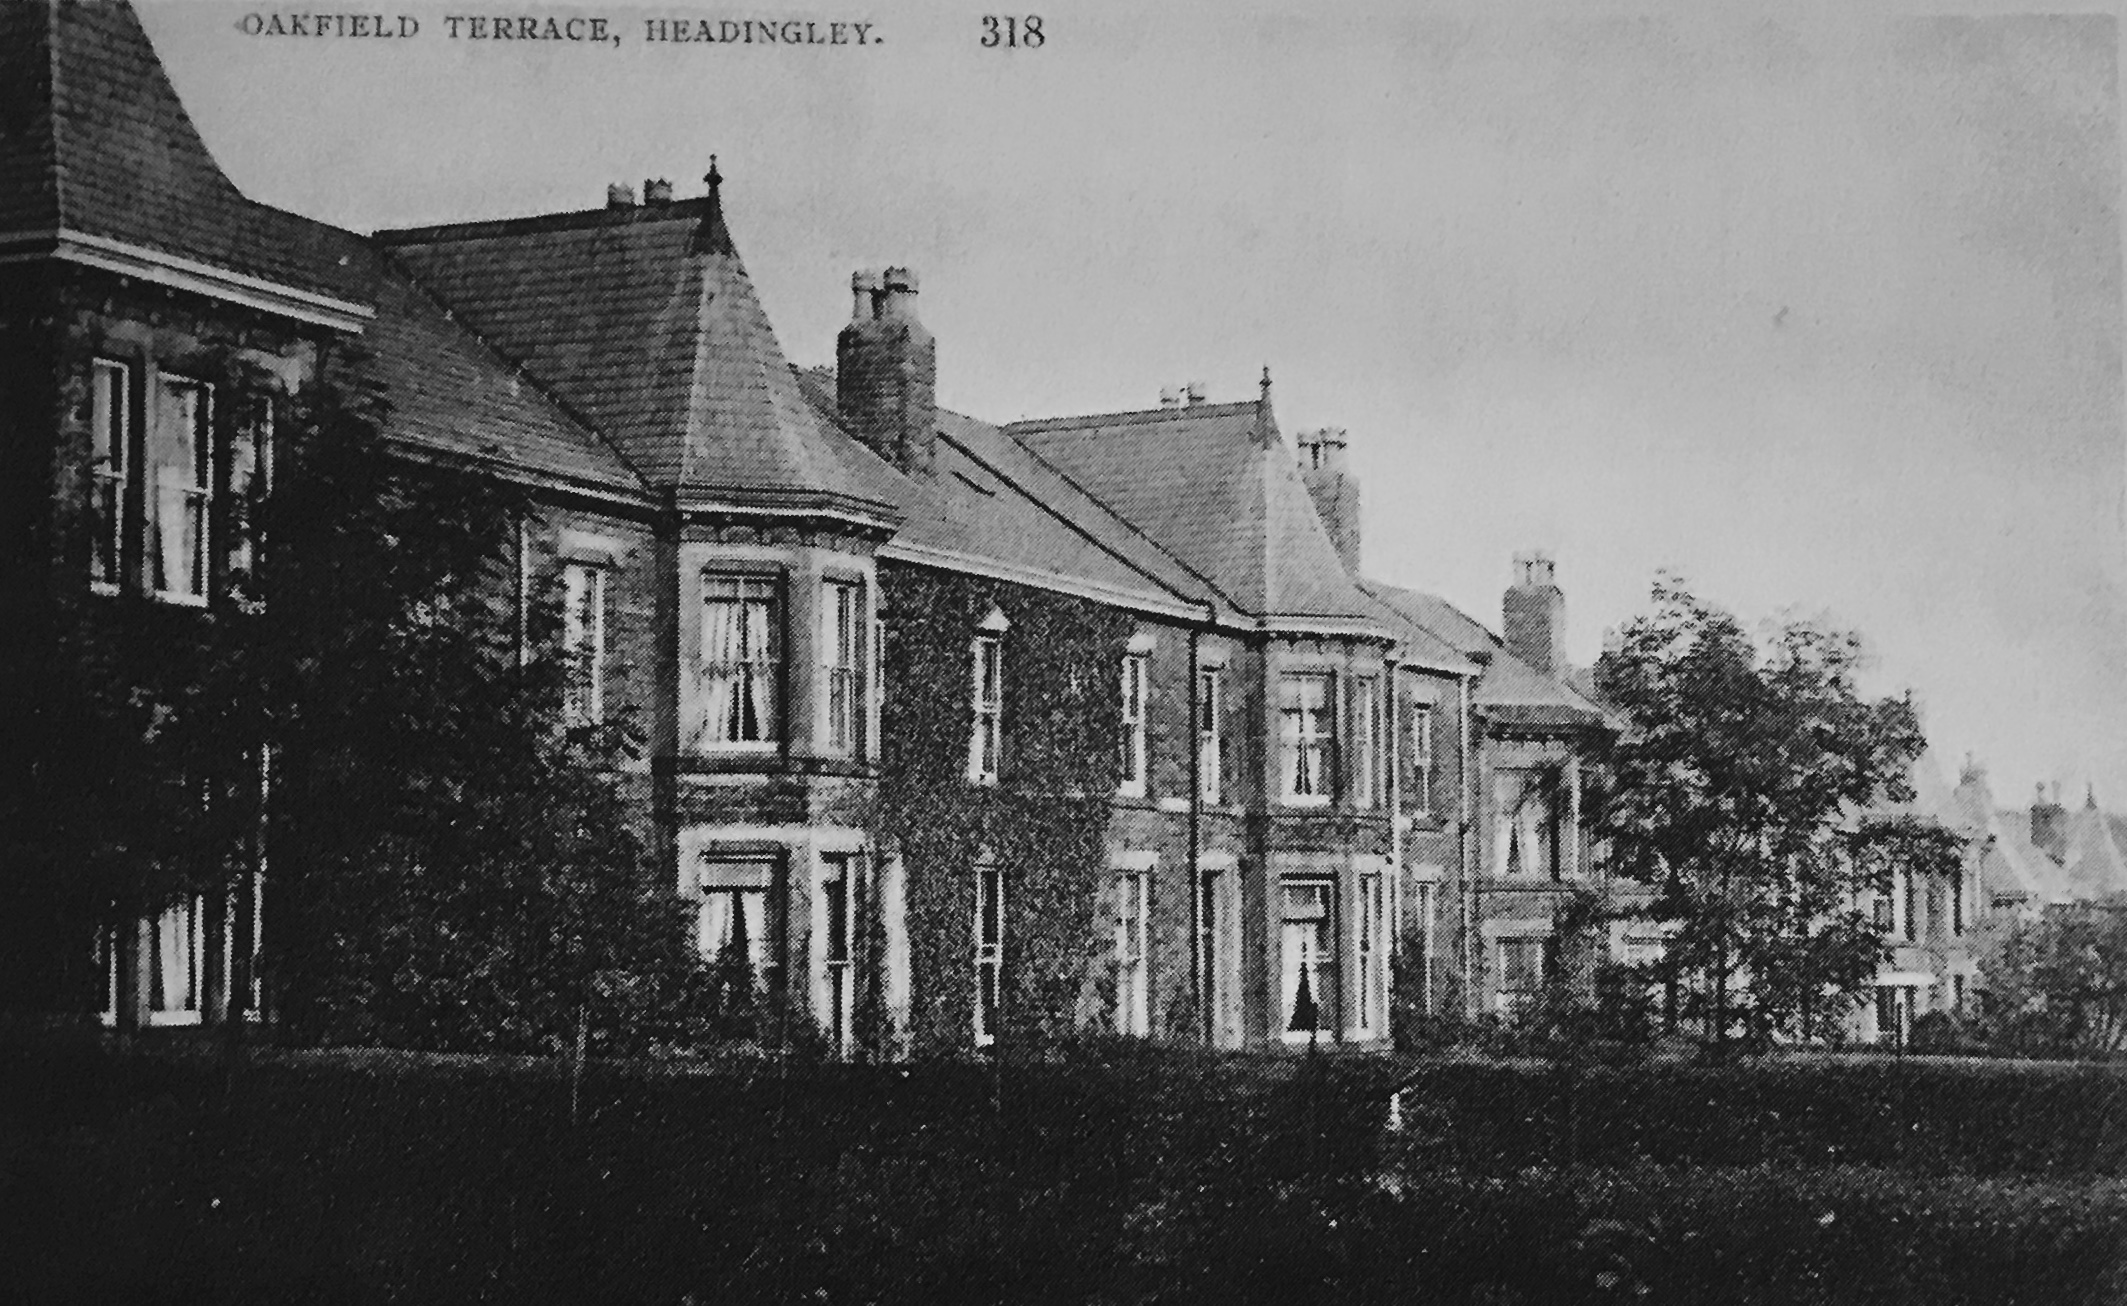 Oakfield Terrace